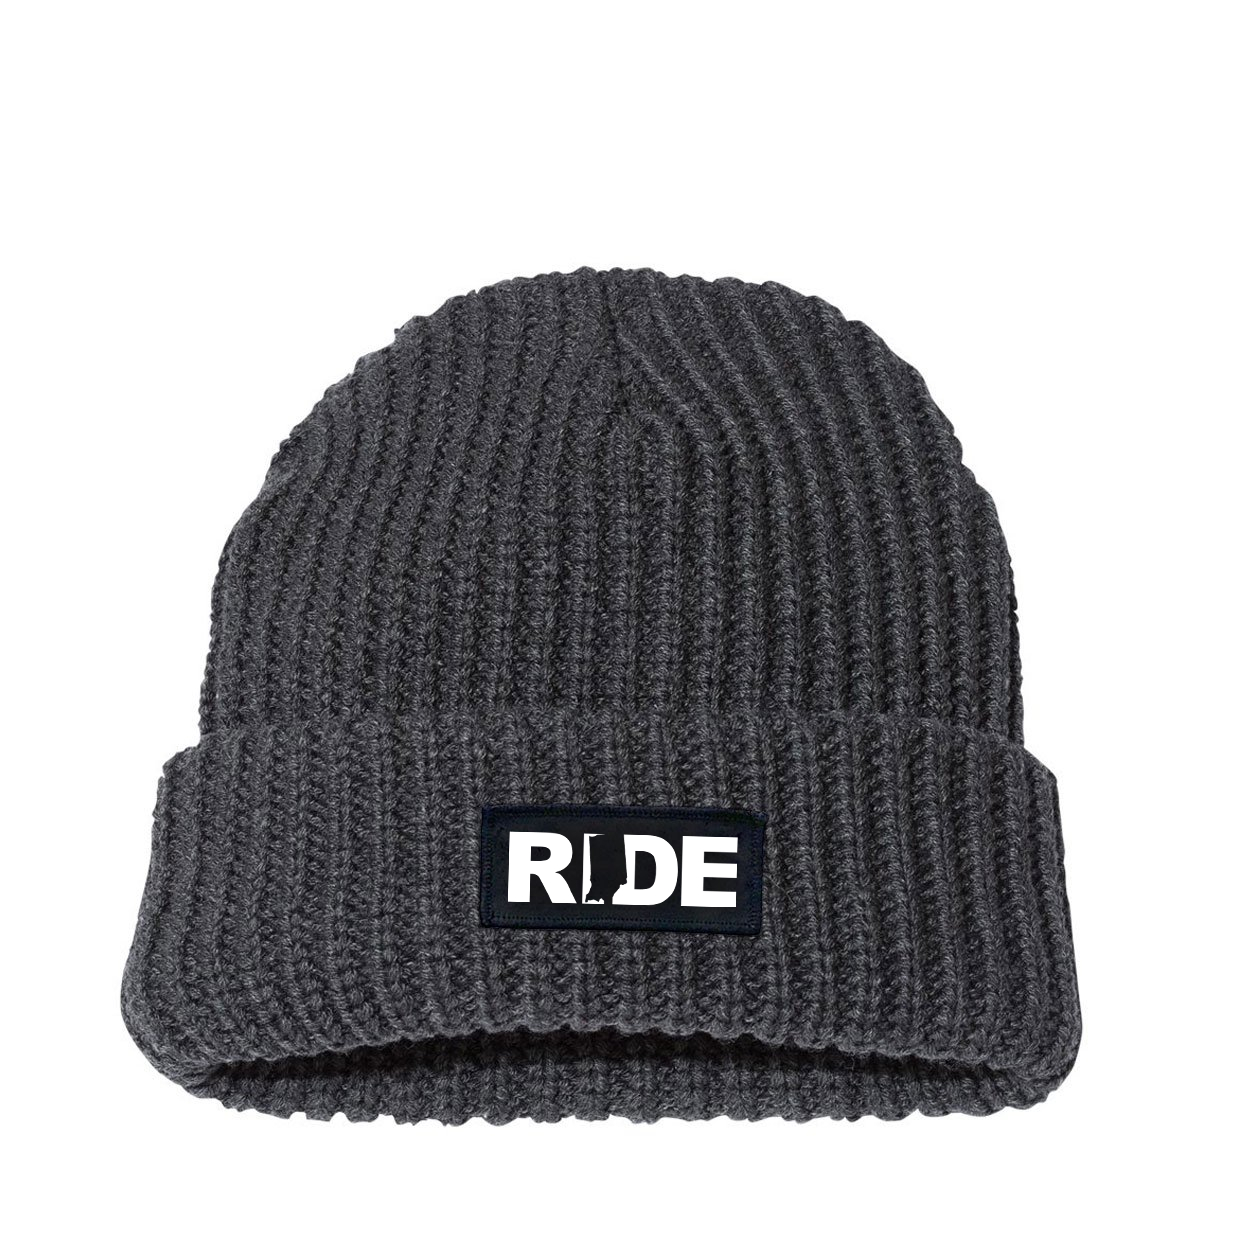 Ride Indiana Night Out Woven Patch Roll Up Jumbo Chunky Knit Beanie Charcoal (White Logo)